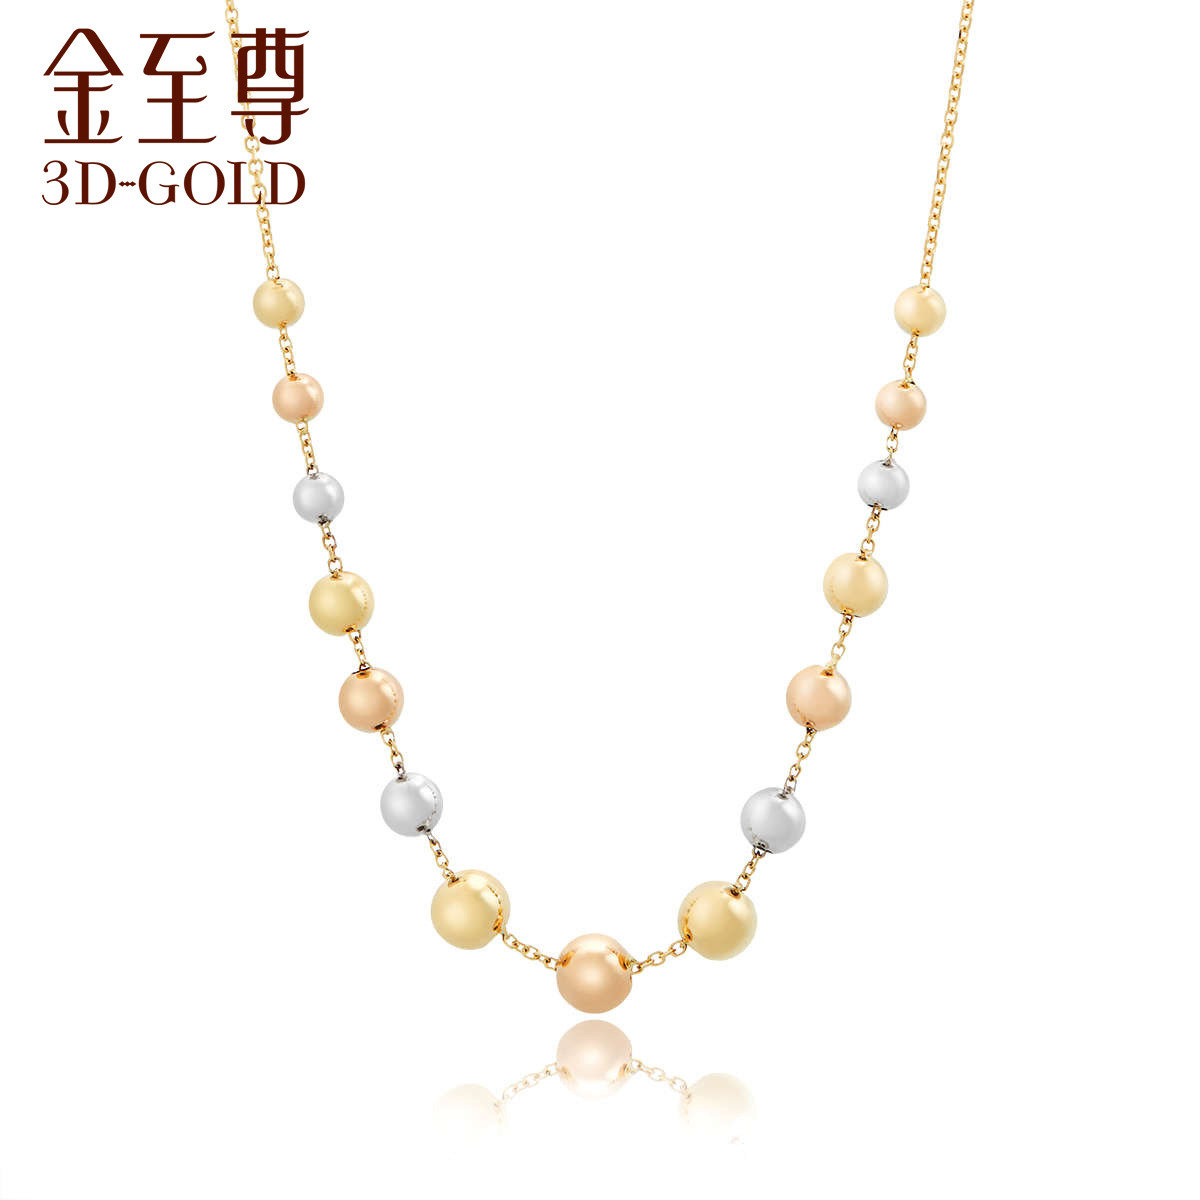 18K Multi-Color Gold Necklace